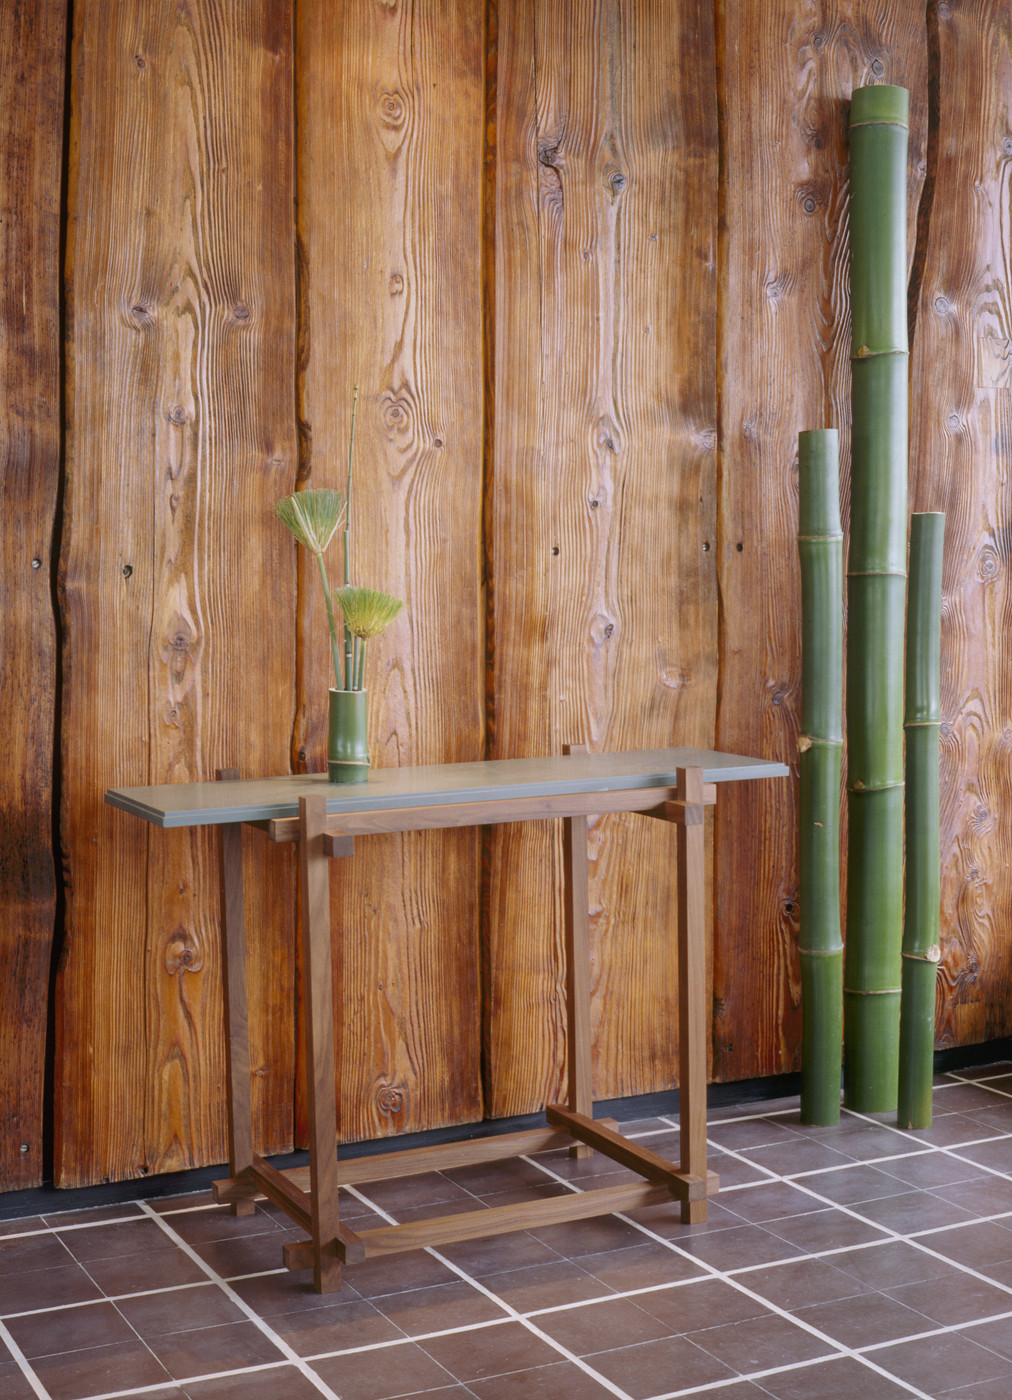 Bamboo For Vases Photos Design Ideas Remodel And Decor